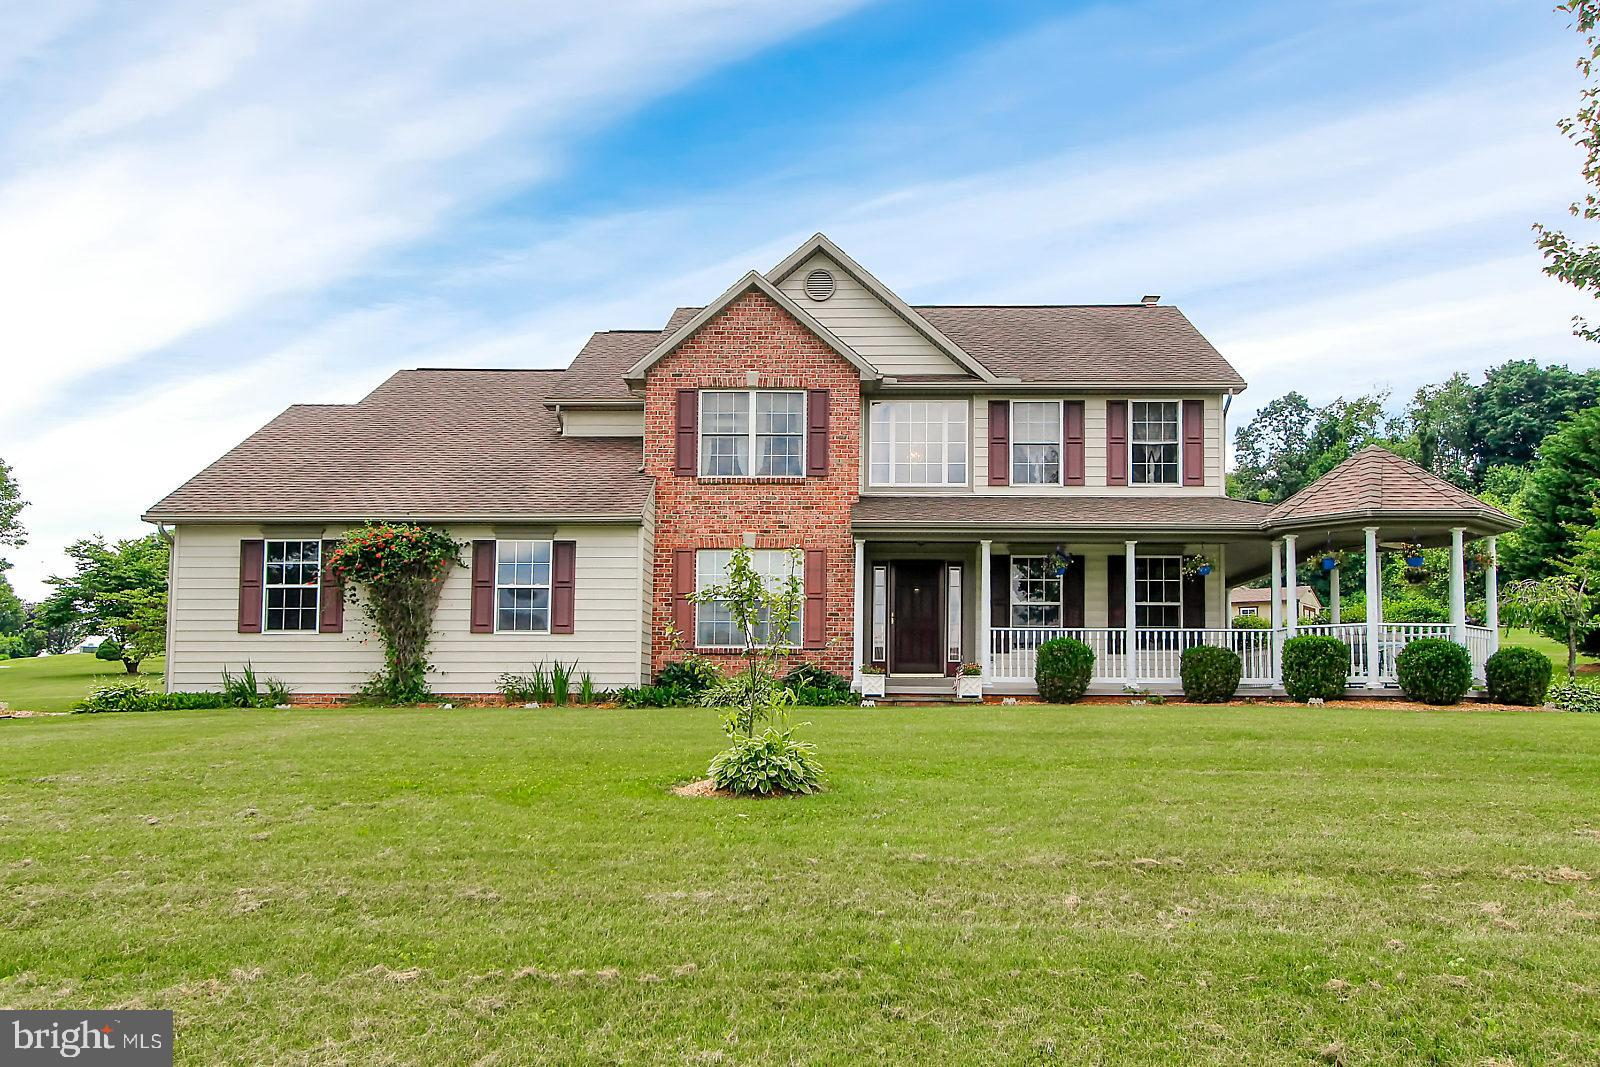 4376 DRY BRIDGE ROAD, GLENVILLE, PA 17329